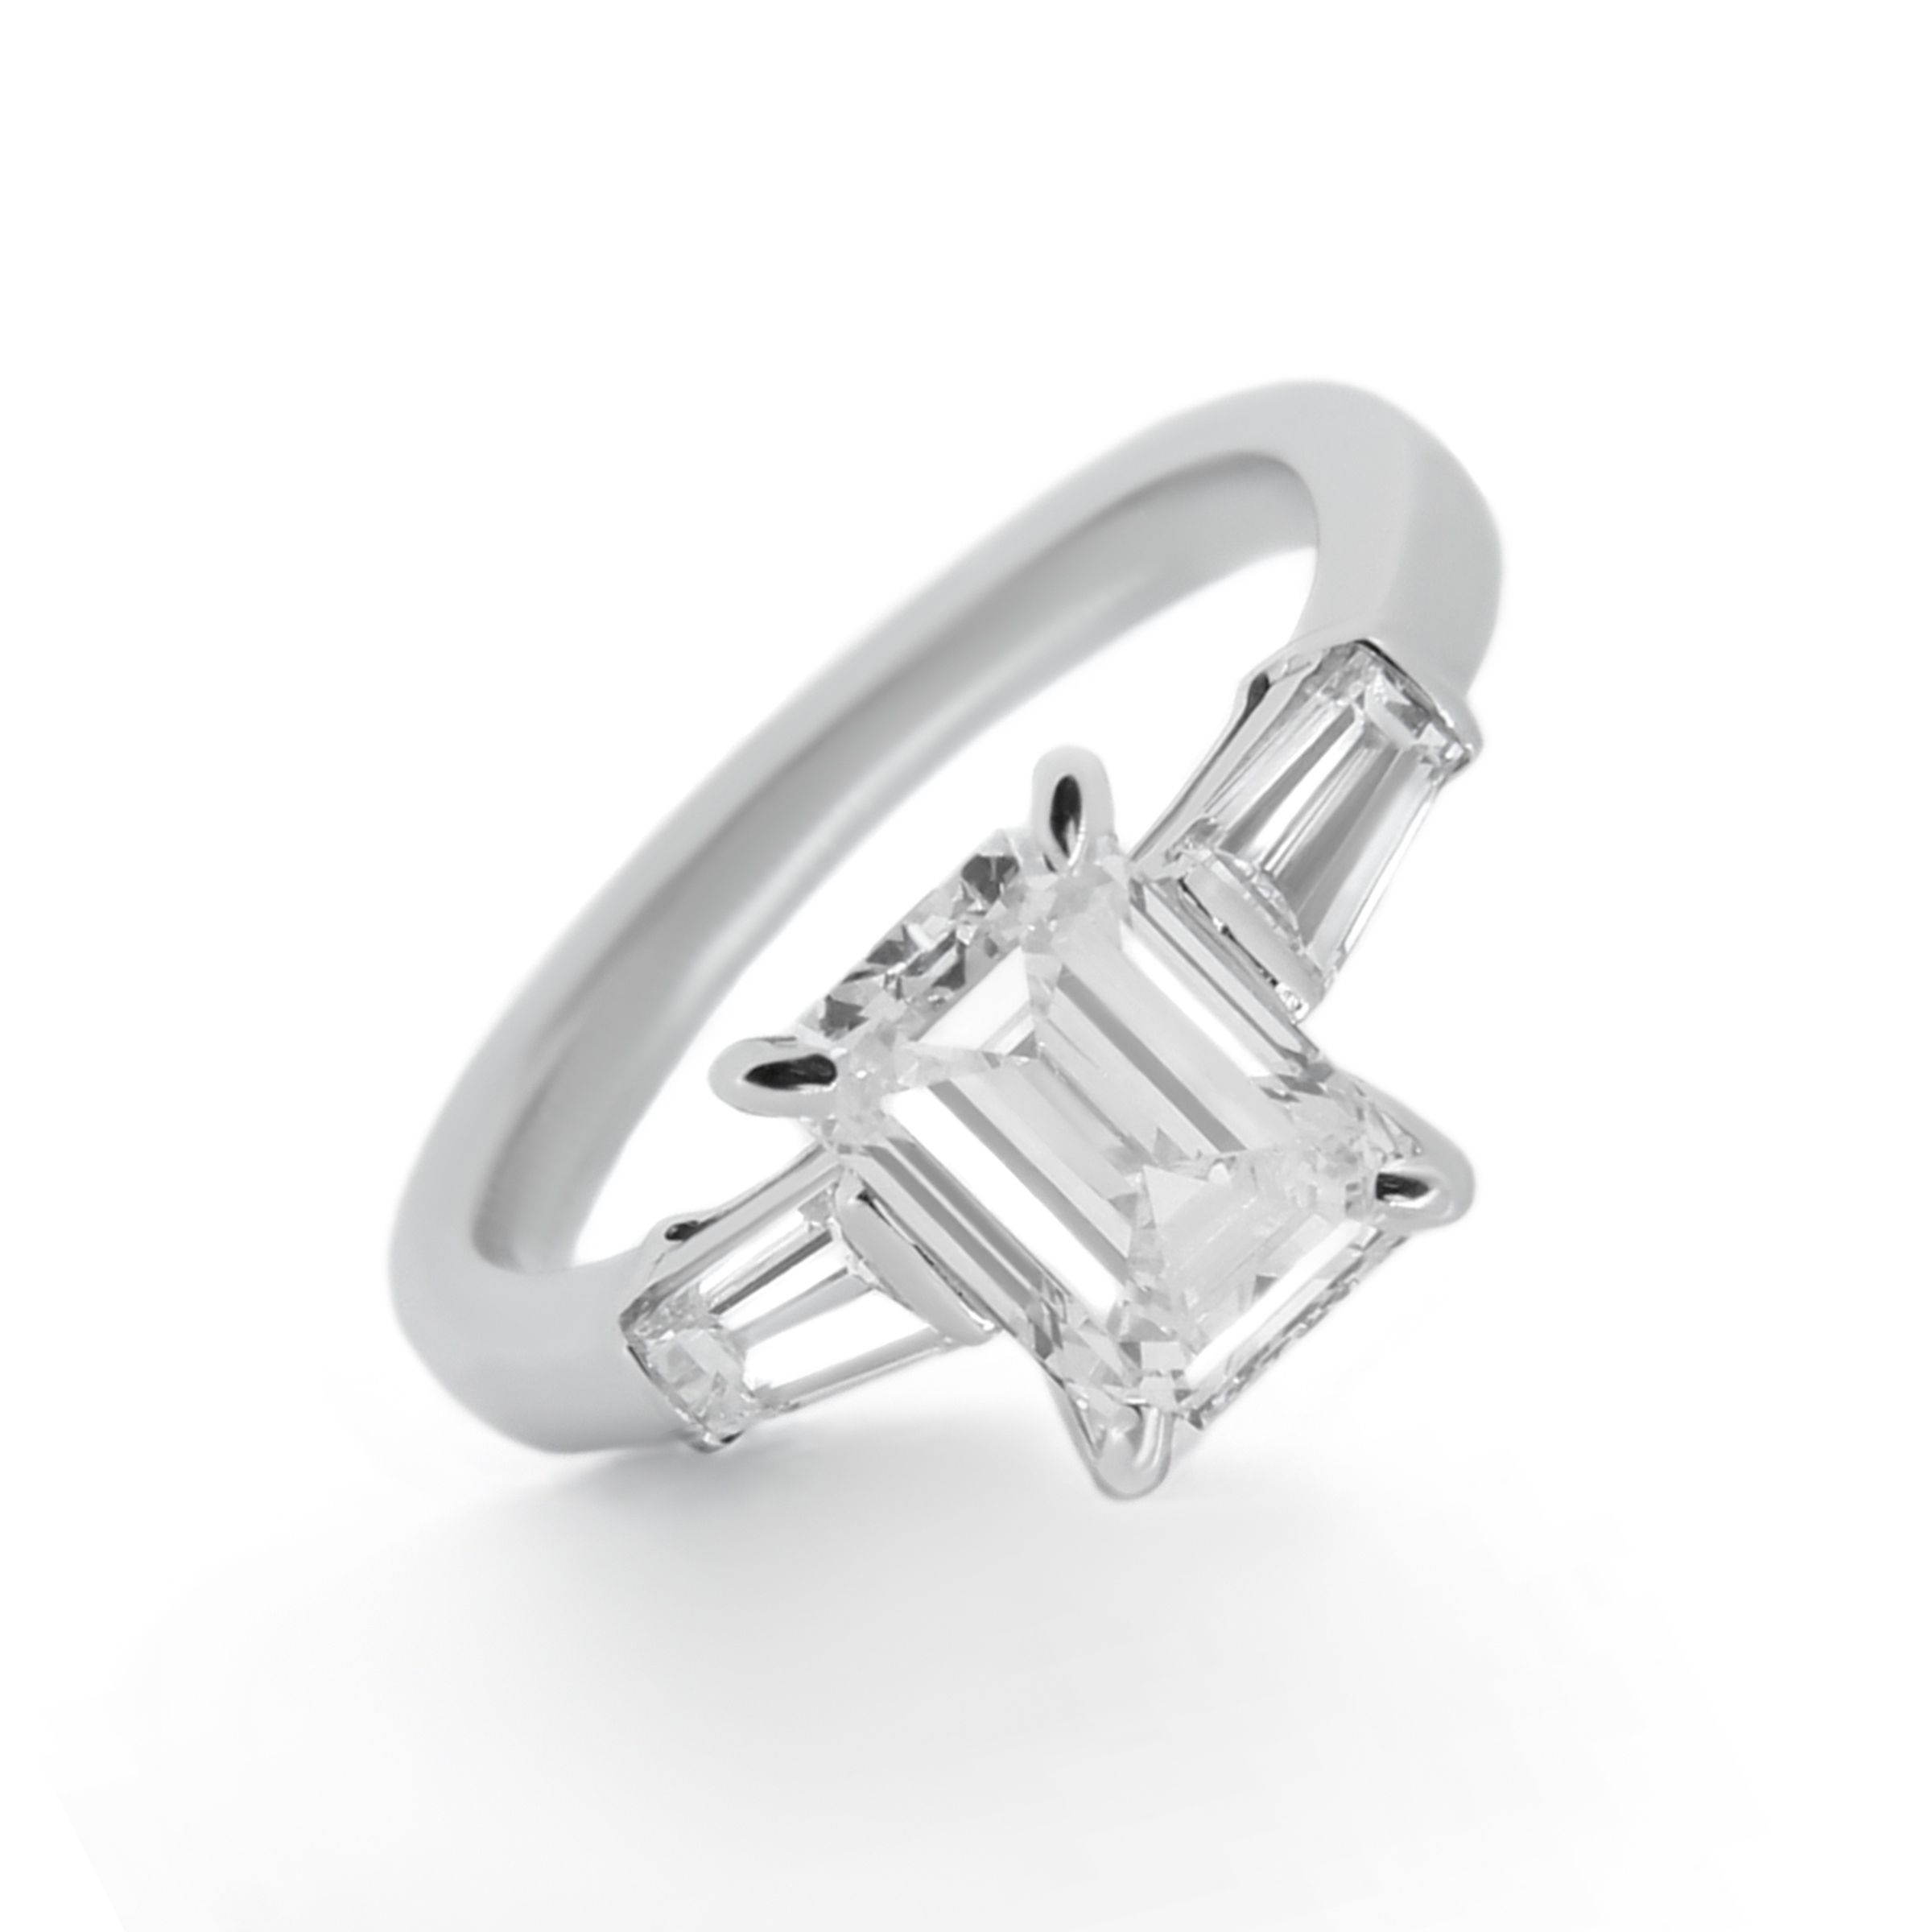 emerald cut diamond ring with baguette side stones- haywards of hong kong